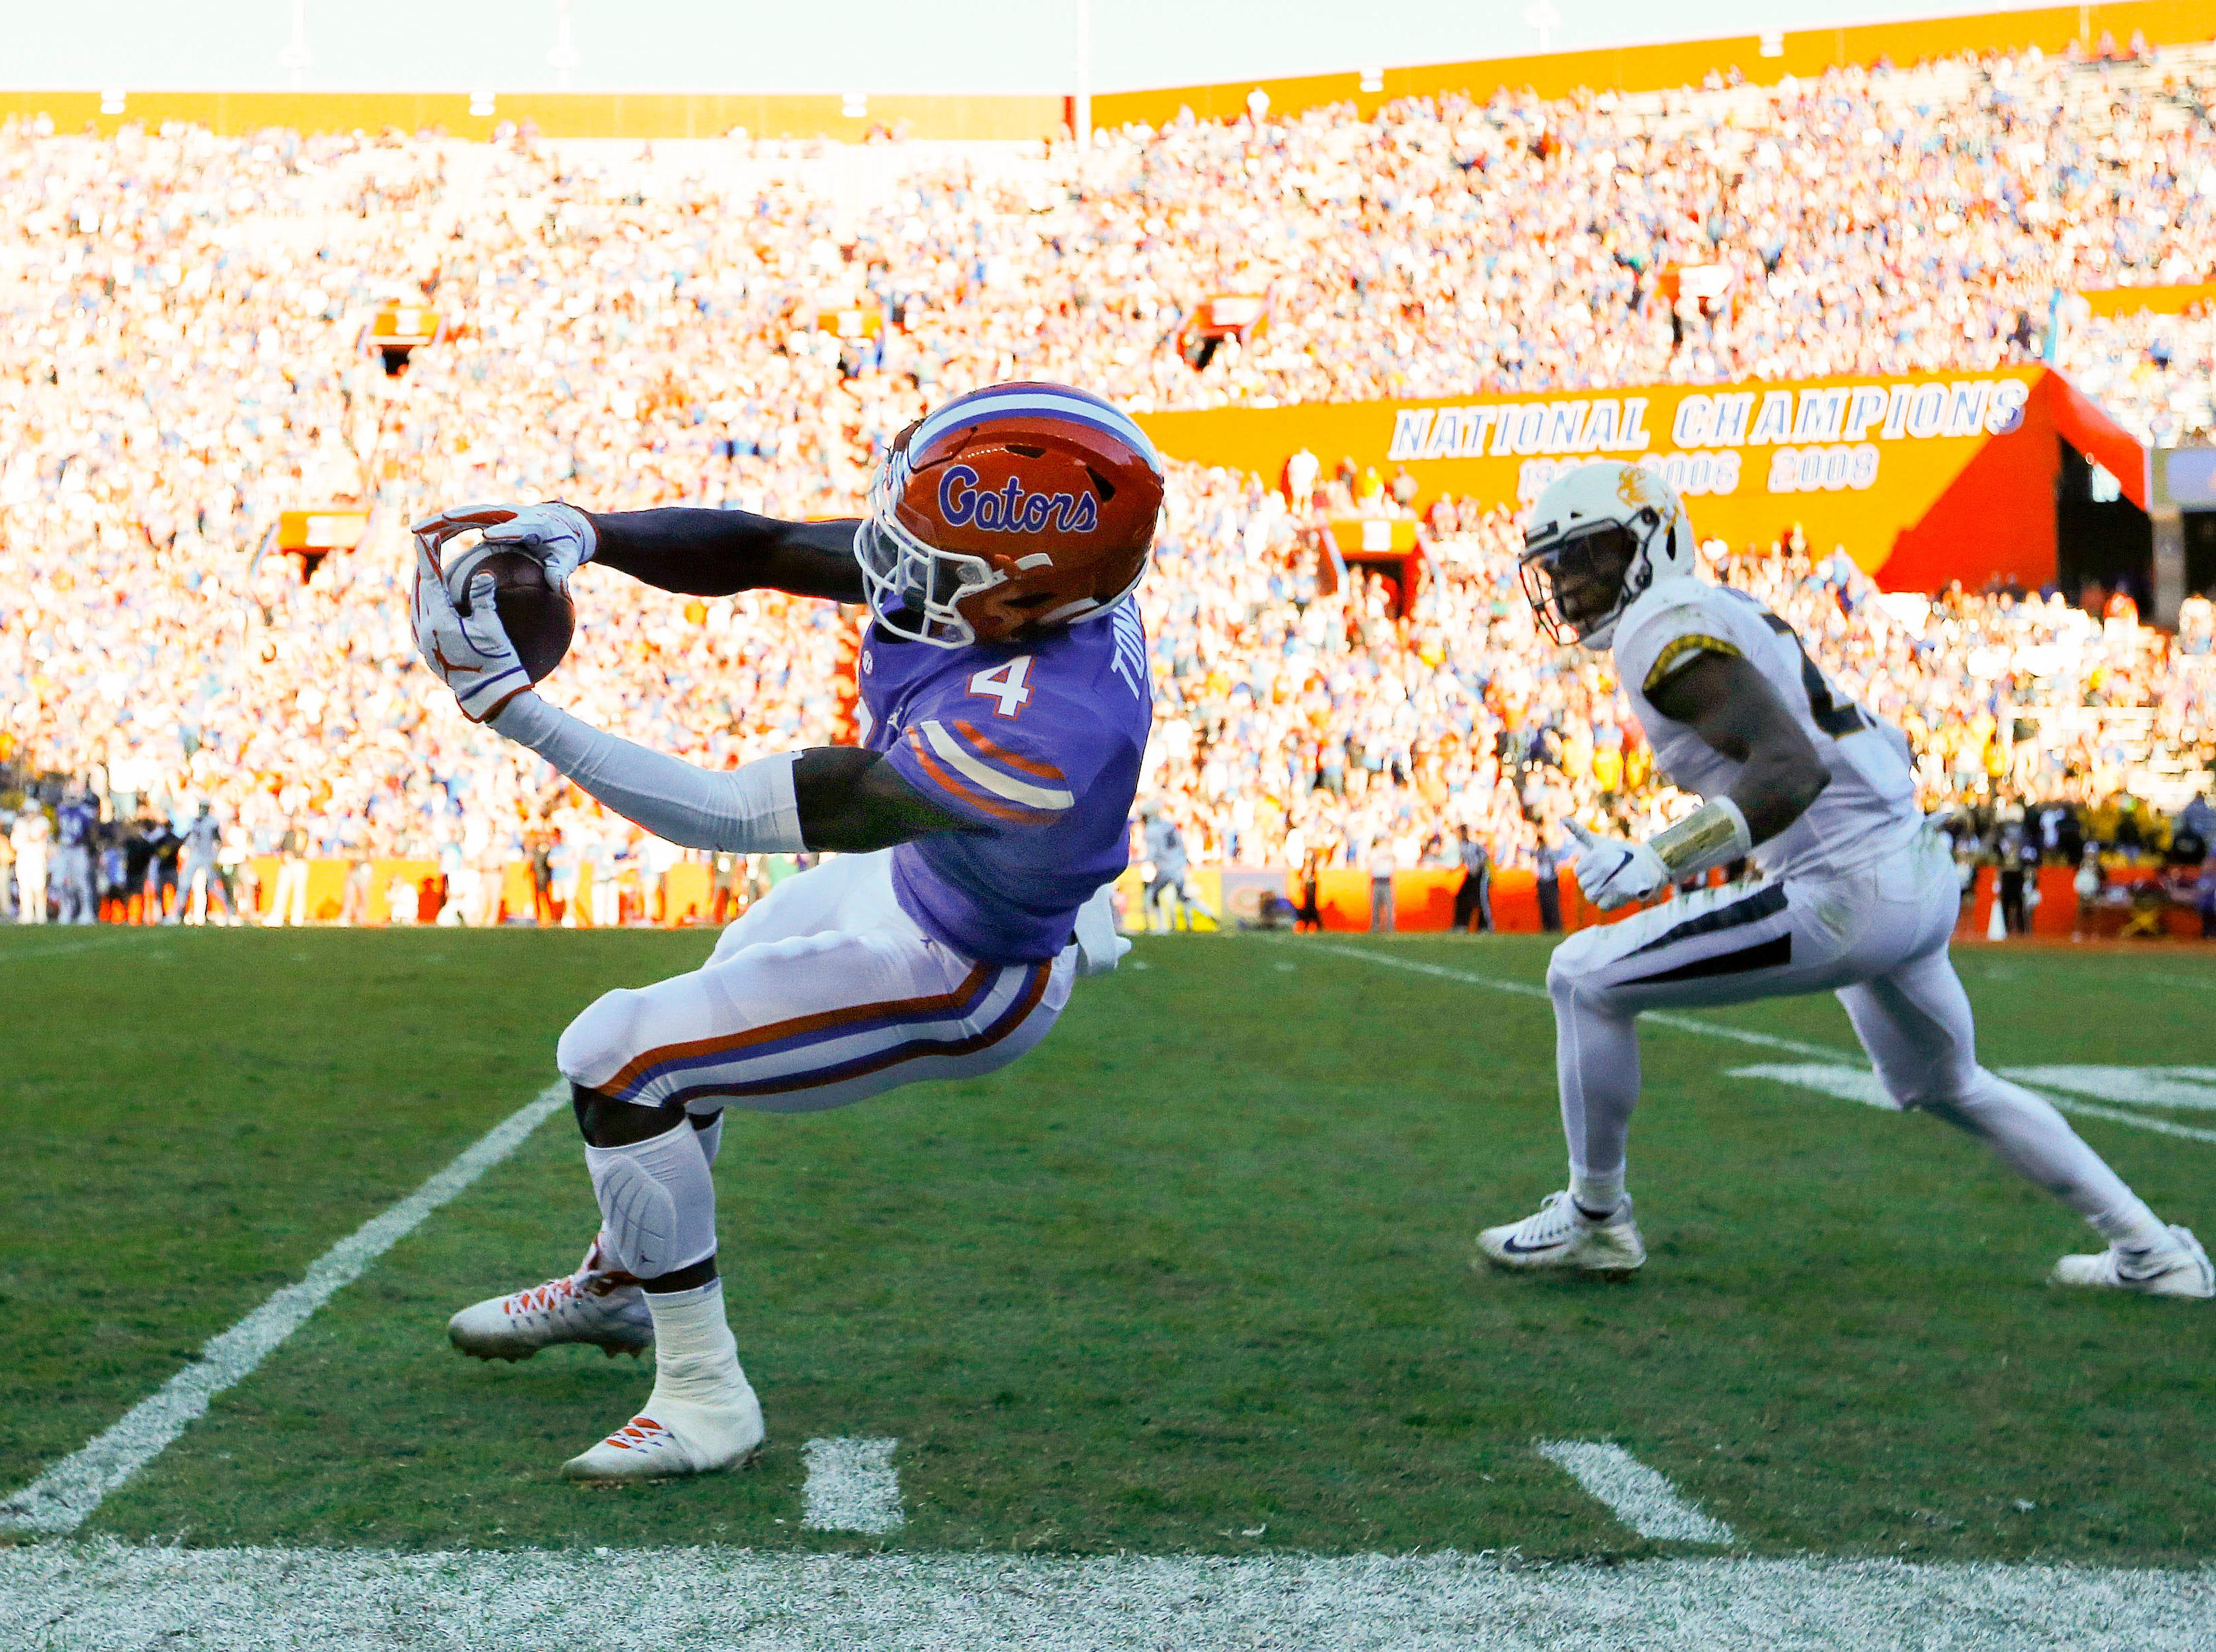 Florida Gators running back Kadarius Toney (4) catches the ball against the Missouri Tigers  during the second quarter at Ben Hill Griffin Stadium.